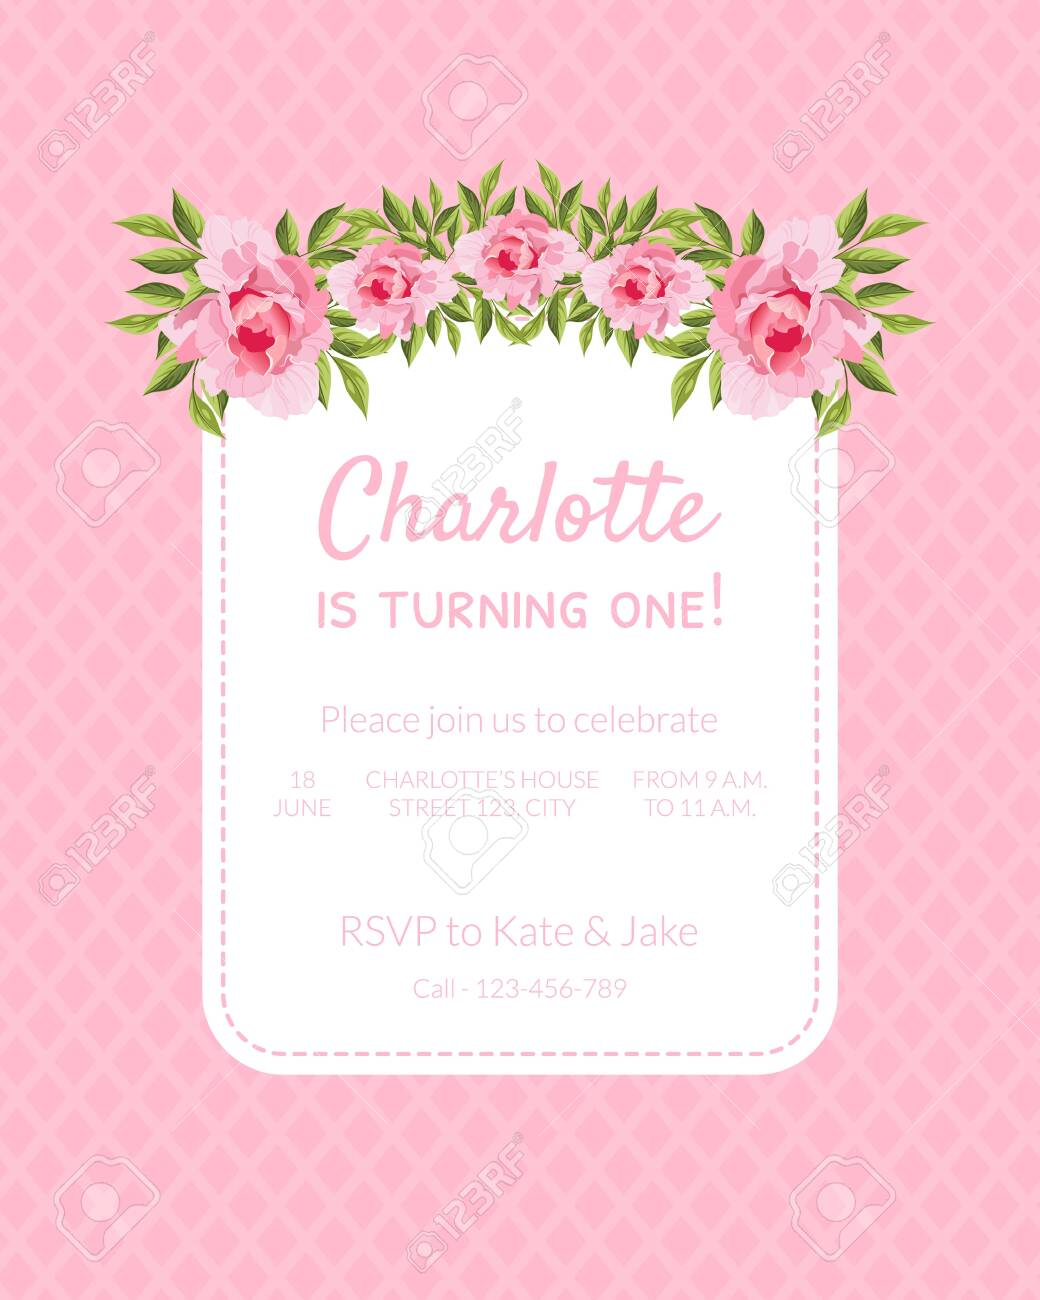 Pink Baby Girl Birthday Invitation Card Is Turning One With Flowers